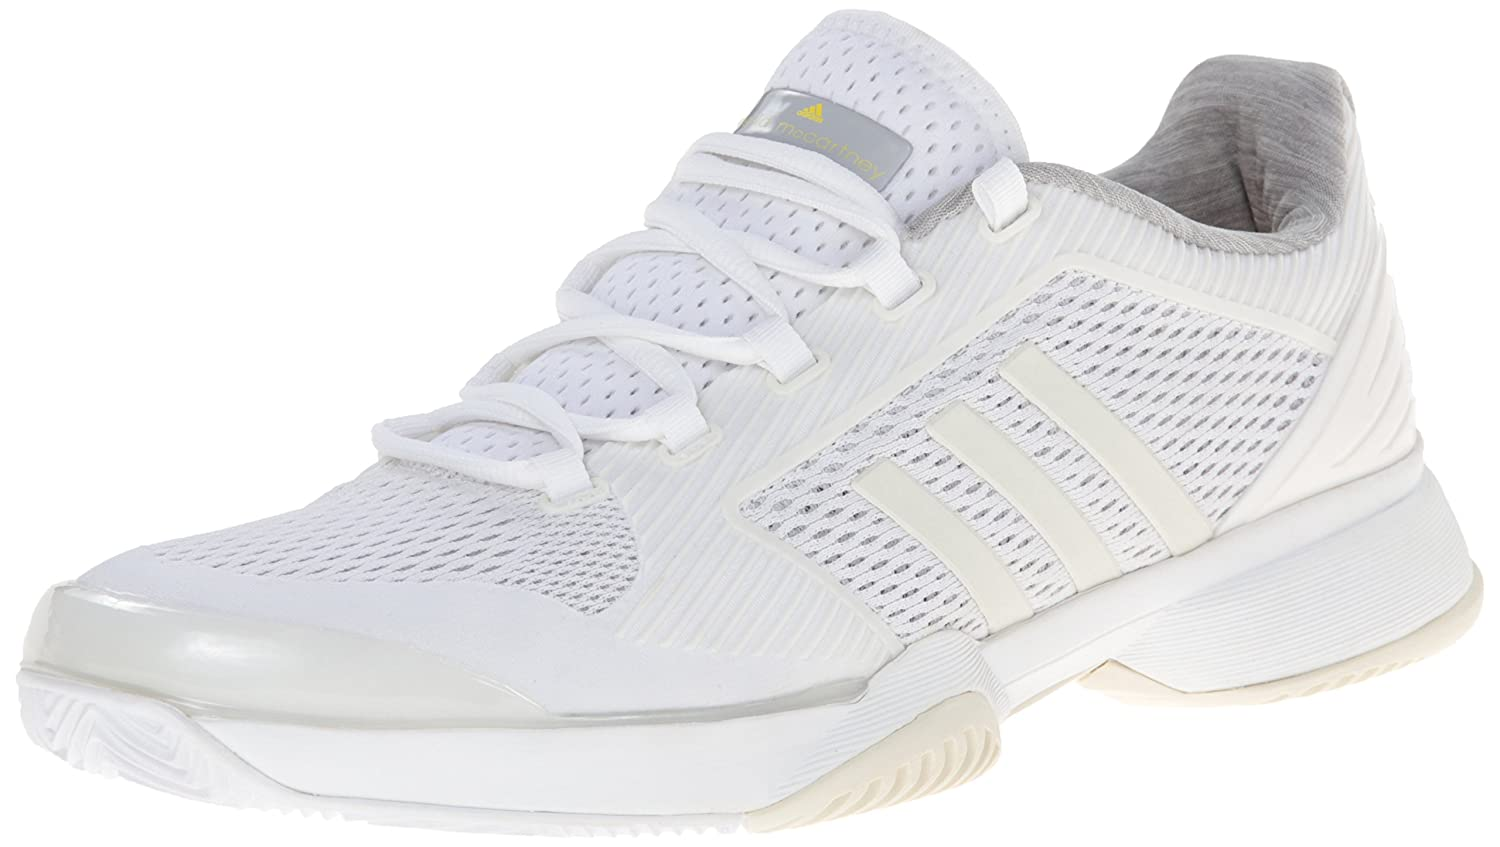 What Tennis Shoes For Women Have Good Arch Support